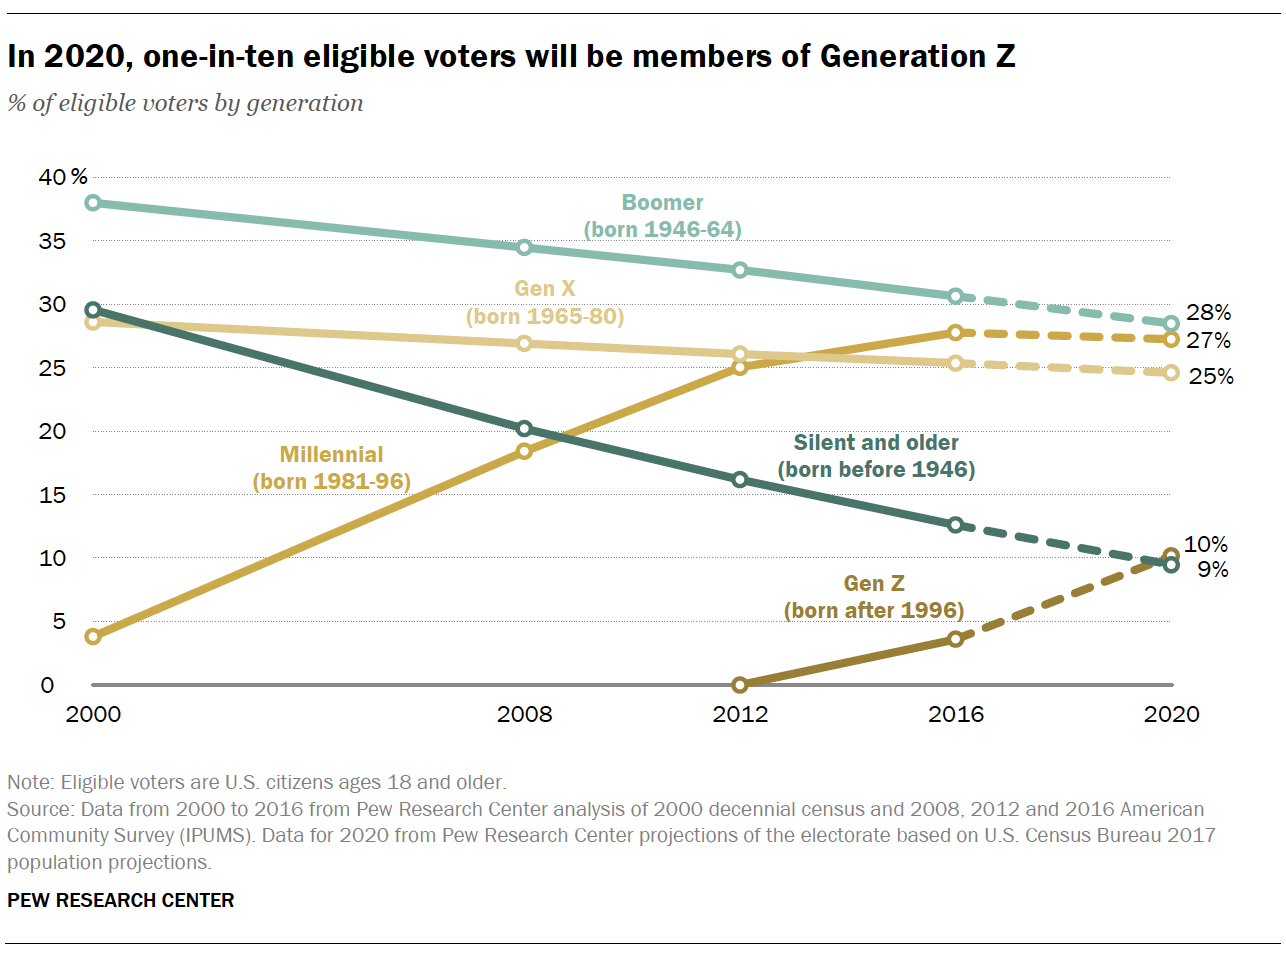 In 2020, one-in-ten eligible voters will be members of Generation Z